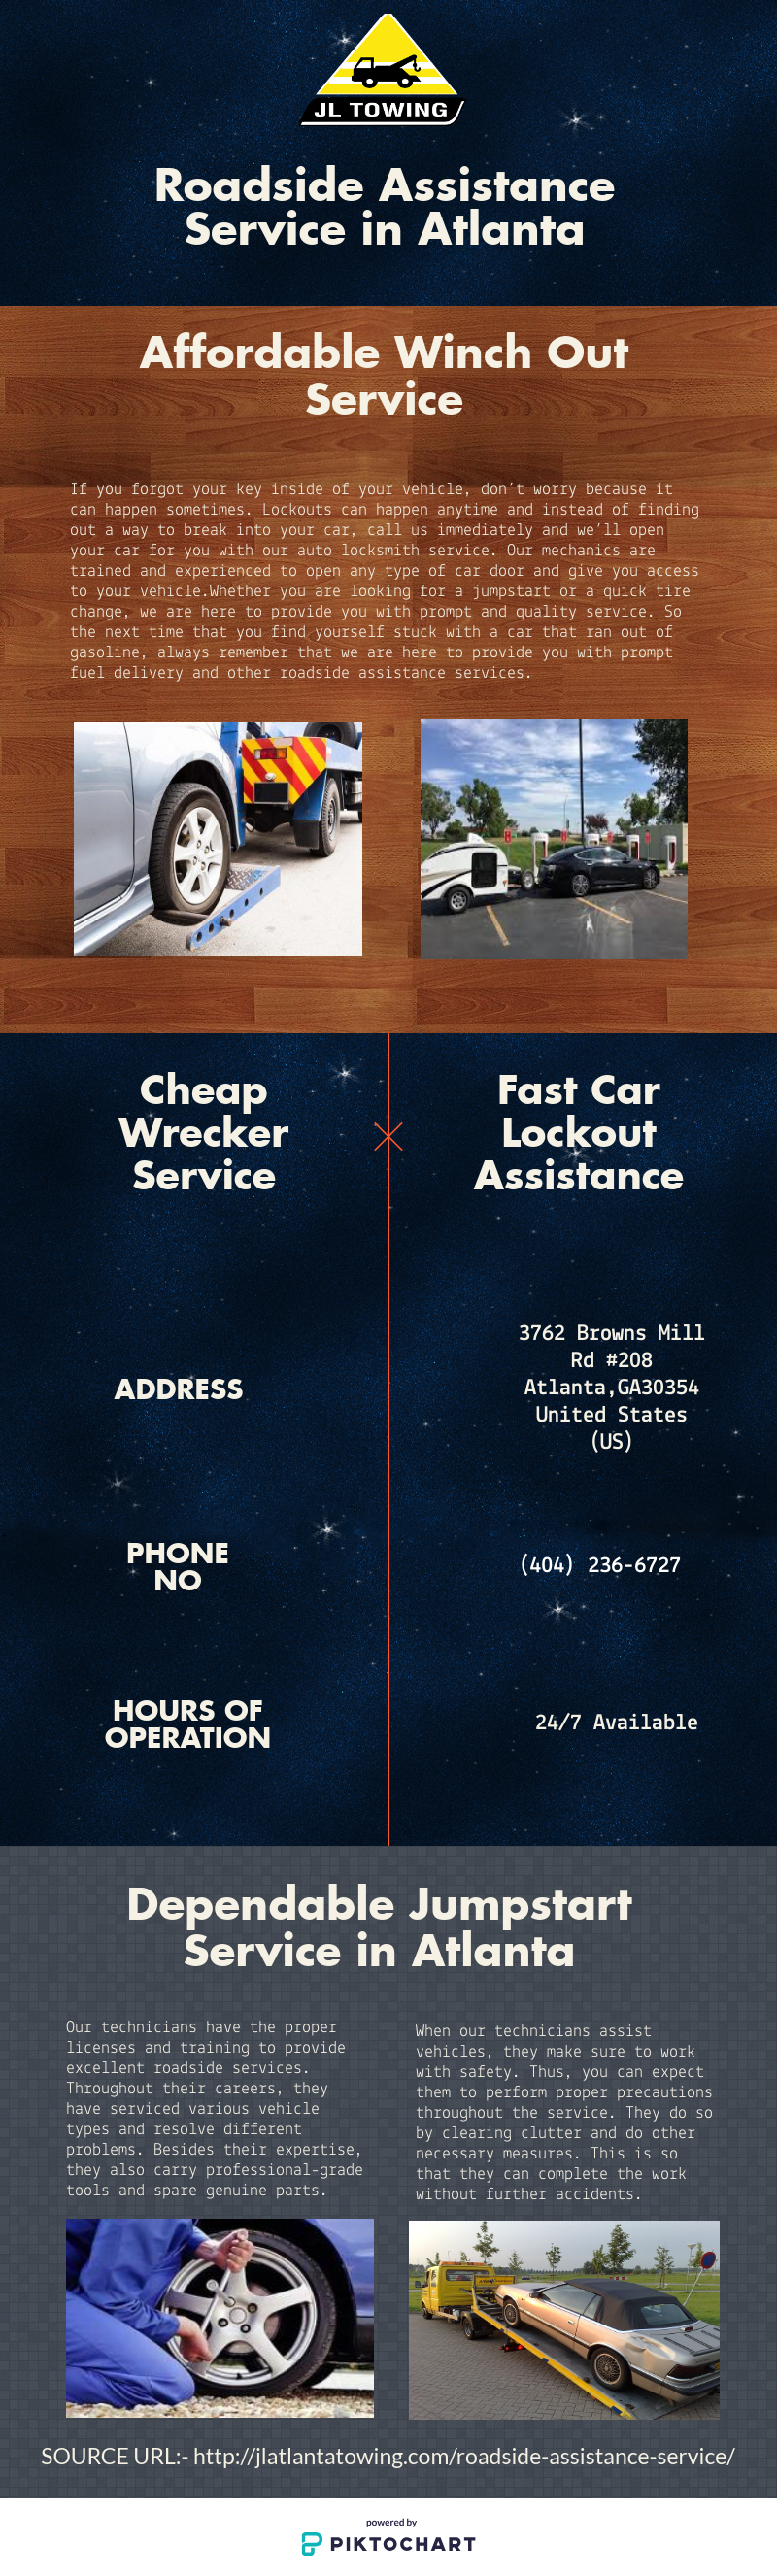 Roadside assistance service Atlanta | jlatlantatowing